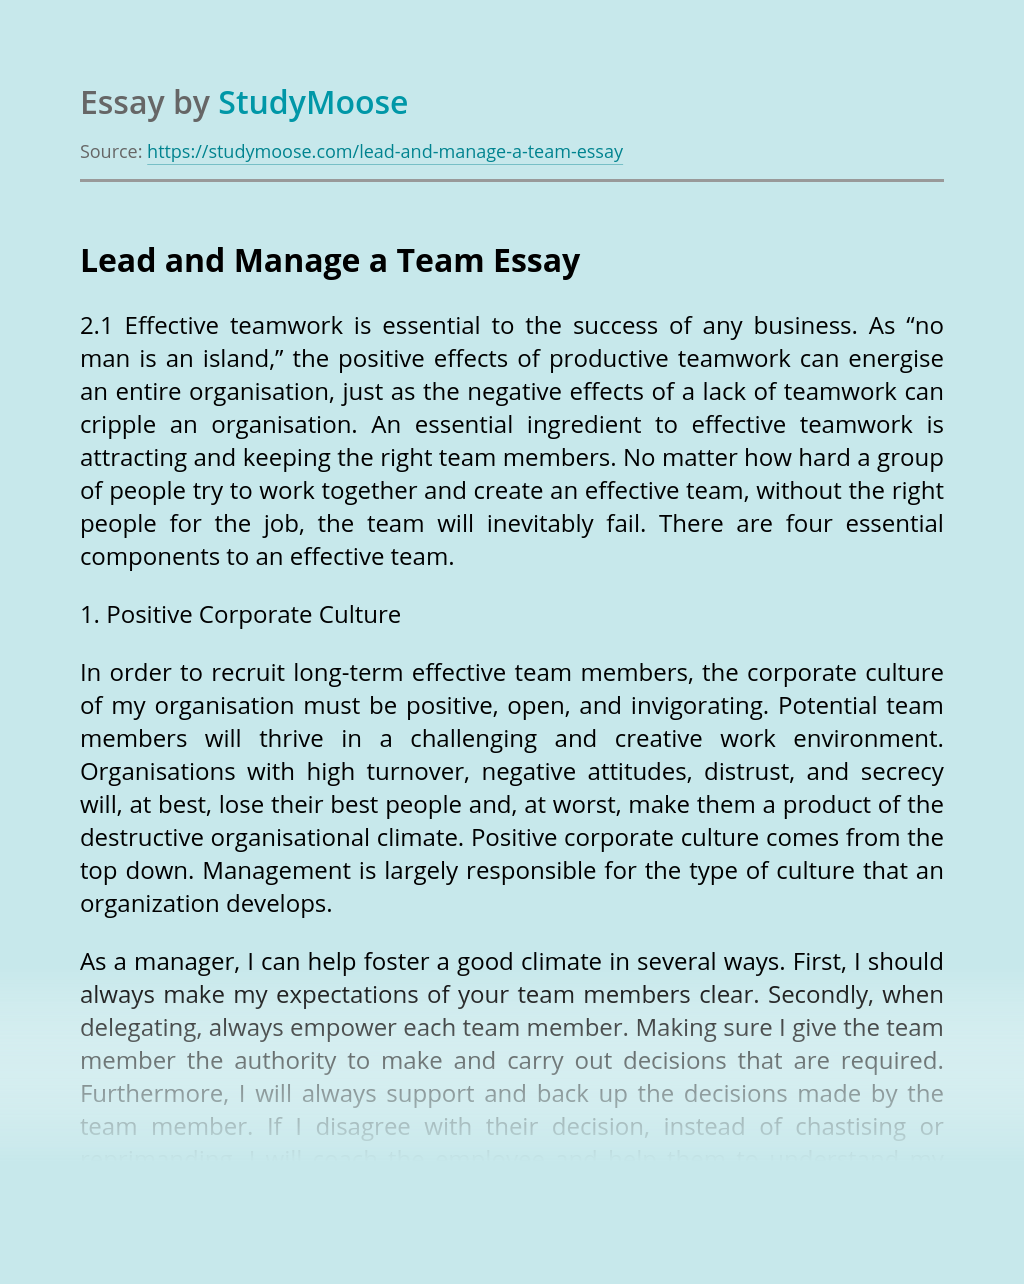 Lead and Manage a Team